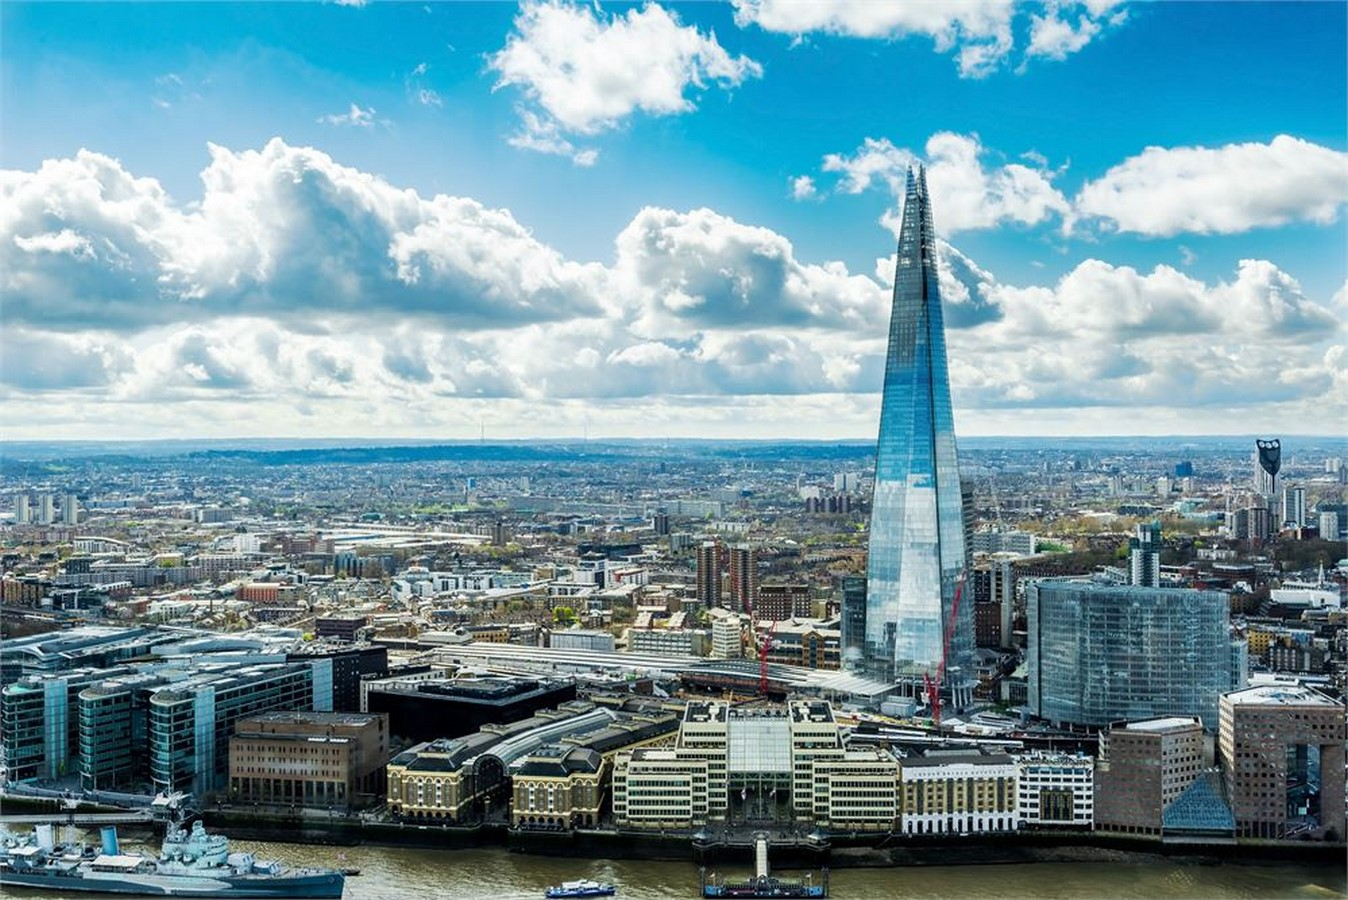 10 Things you did not know about The Shard, London - Sheet1